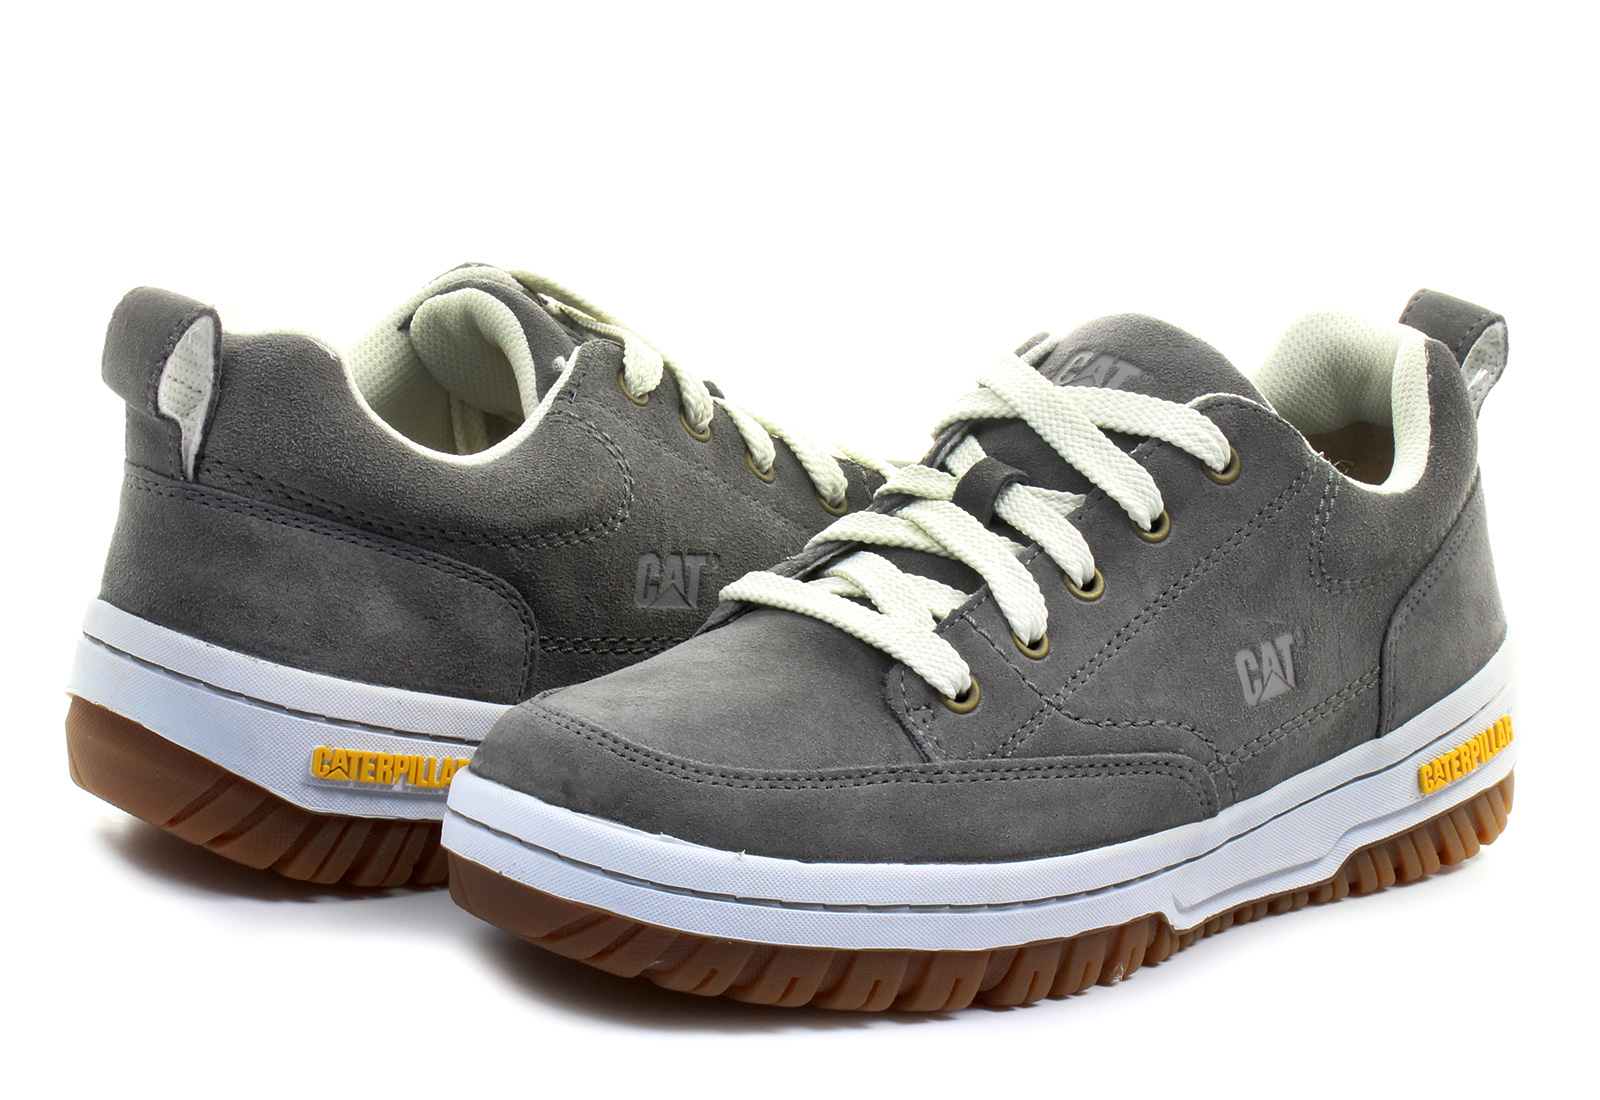 Cat shoes decade 717344 gar online shop for sneakers shoes and